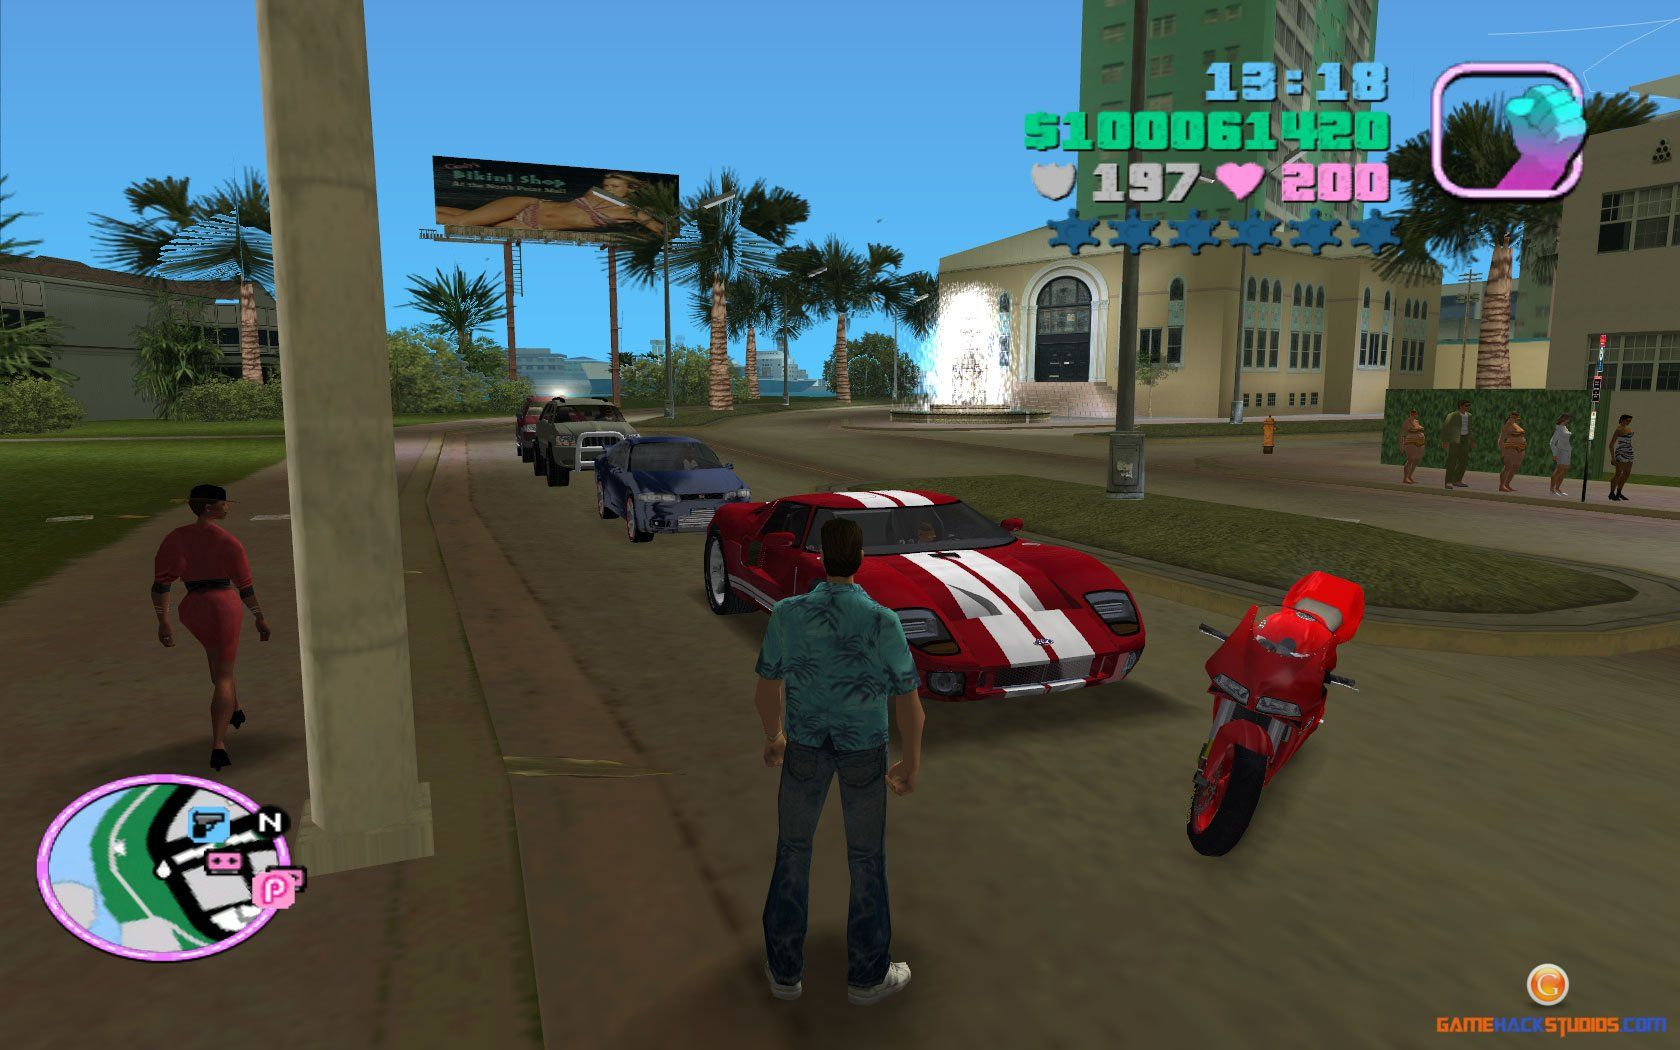 gta vice city game download in android, gta vice city apk obb, gta vicy city game,